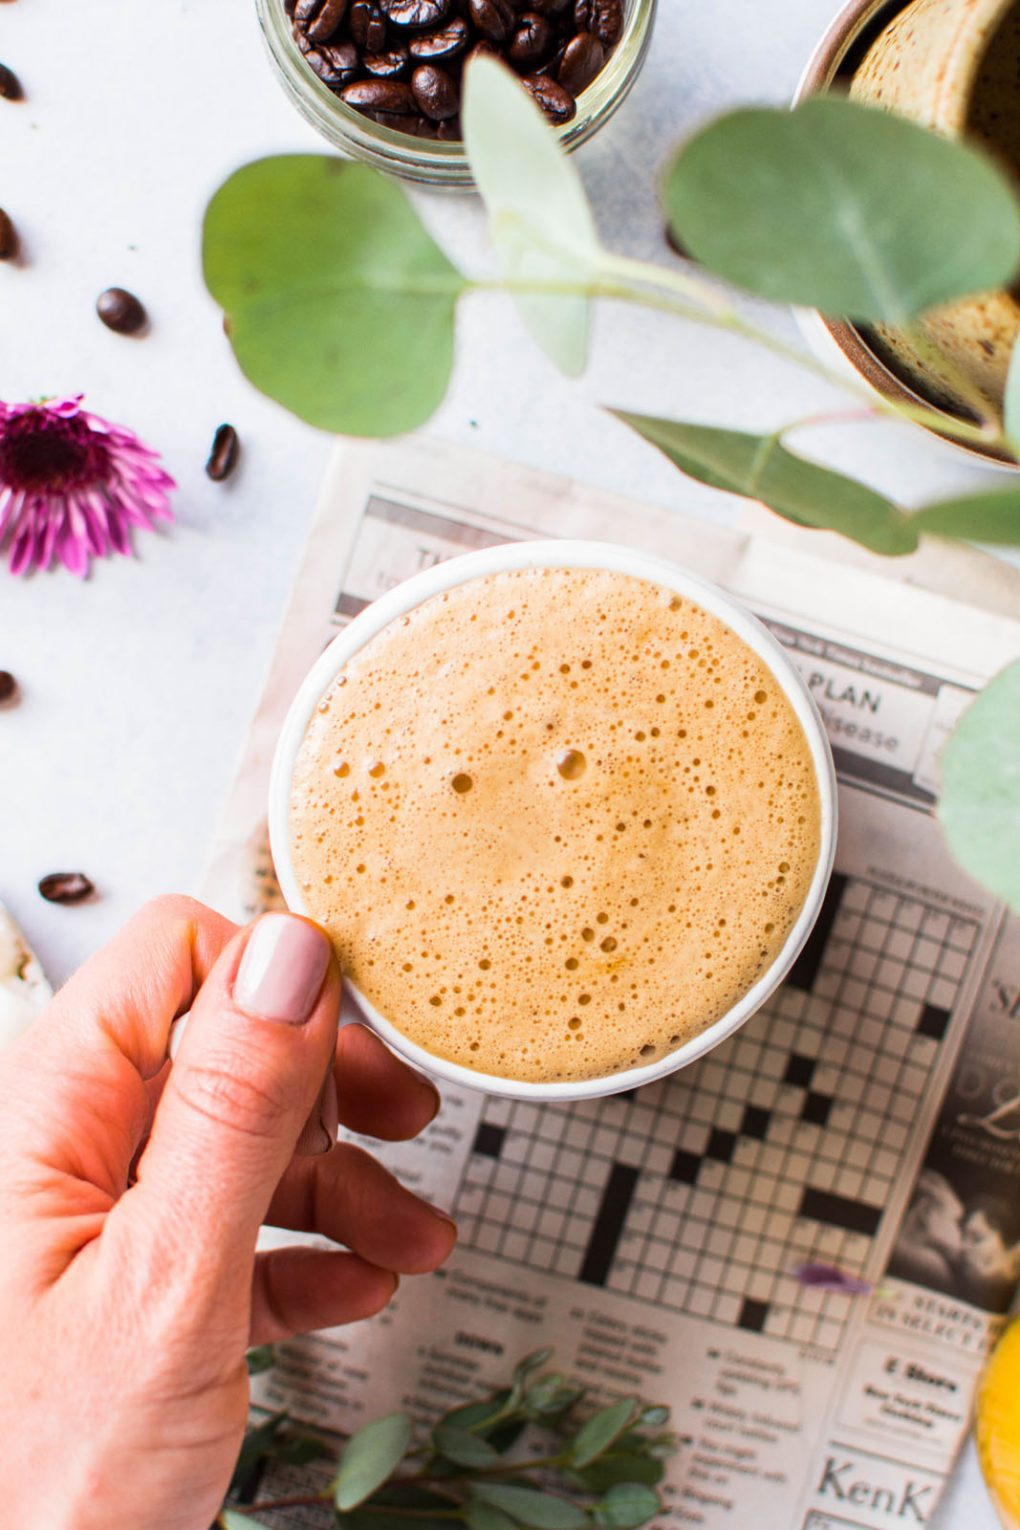 Overhead shot of a hand holding a super creamy cup of bulletproof coffee for a how to make bulletproof coffee in 3 easy steps guide. On a light background with a newspaper crossword puzzle peeking into the frame.